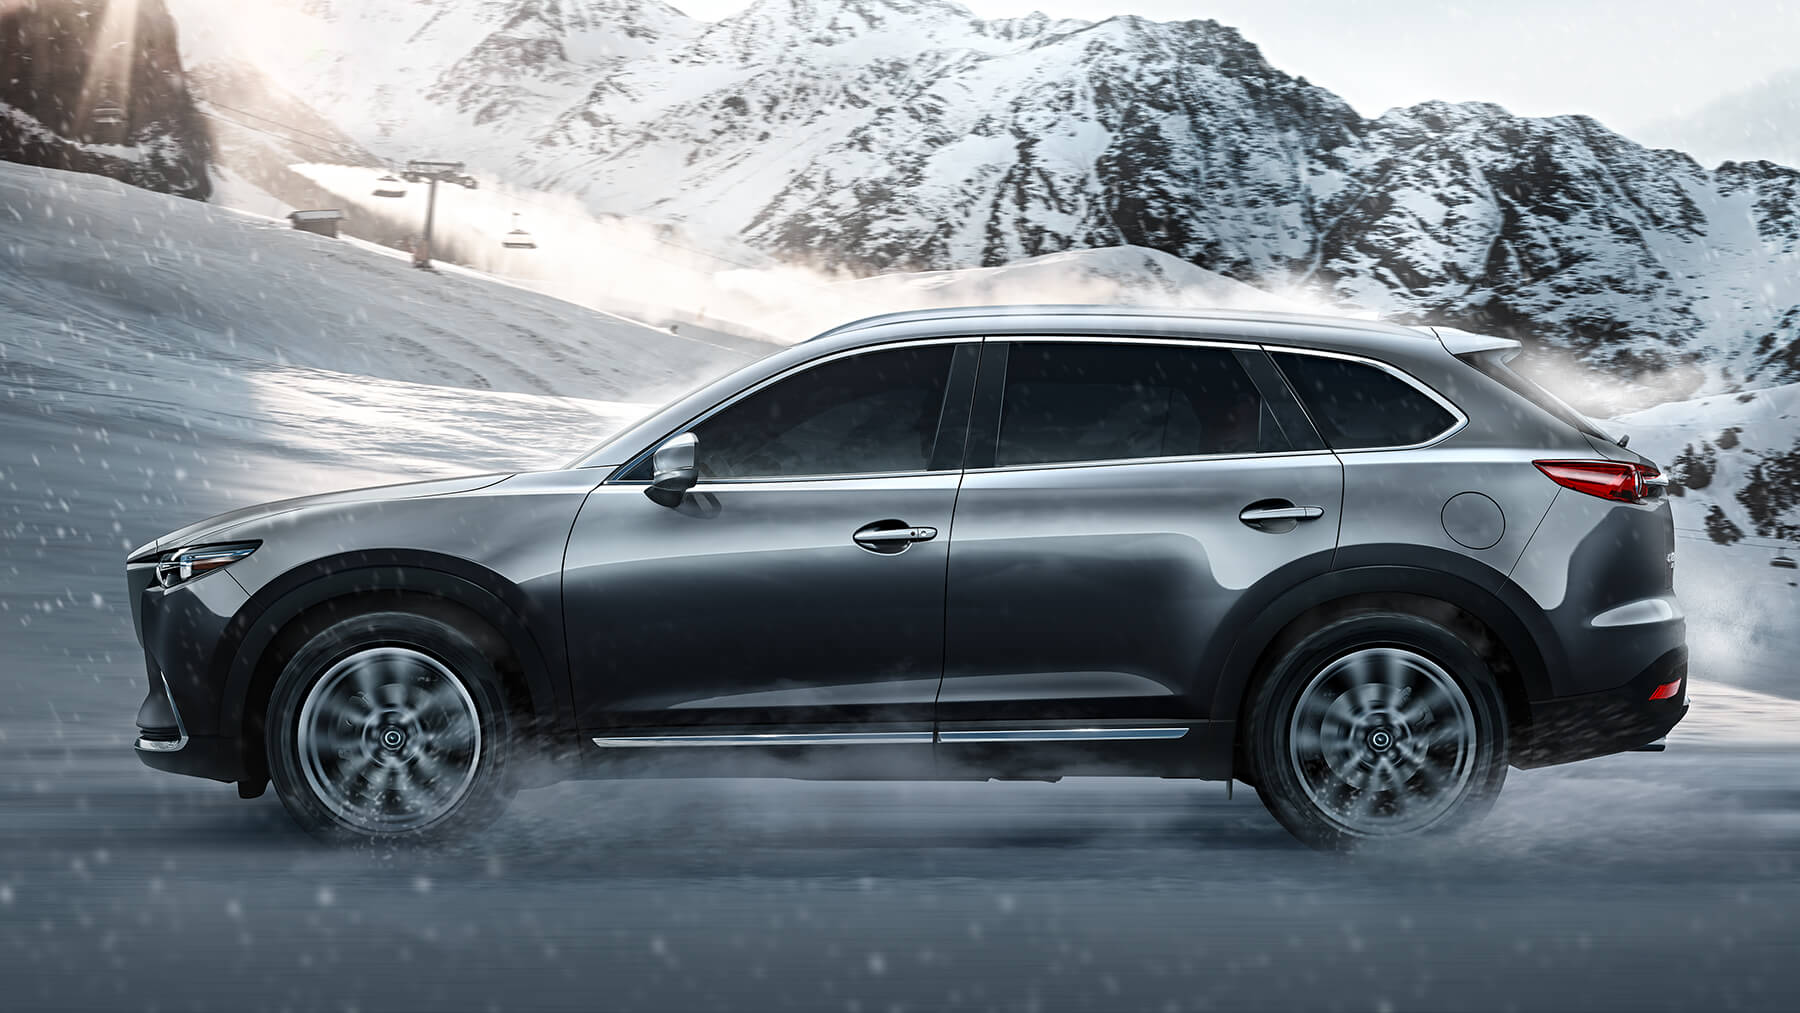 2016-cx9-machine-grey-driving-snow-mde-cx9-gallery